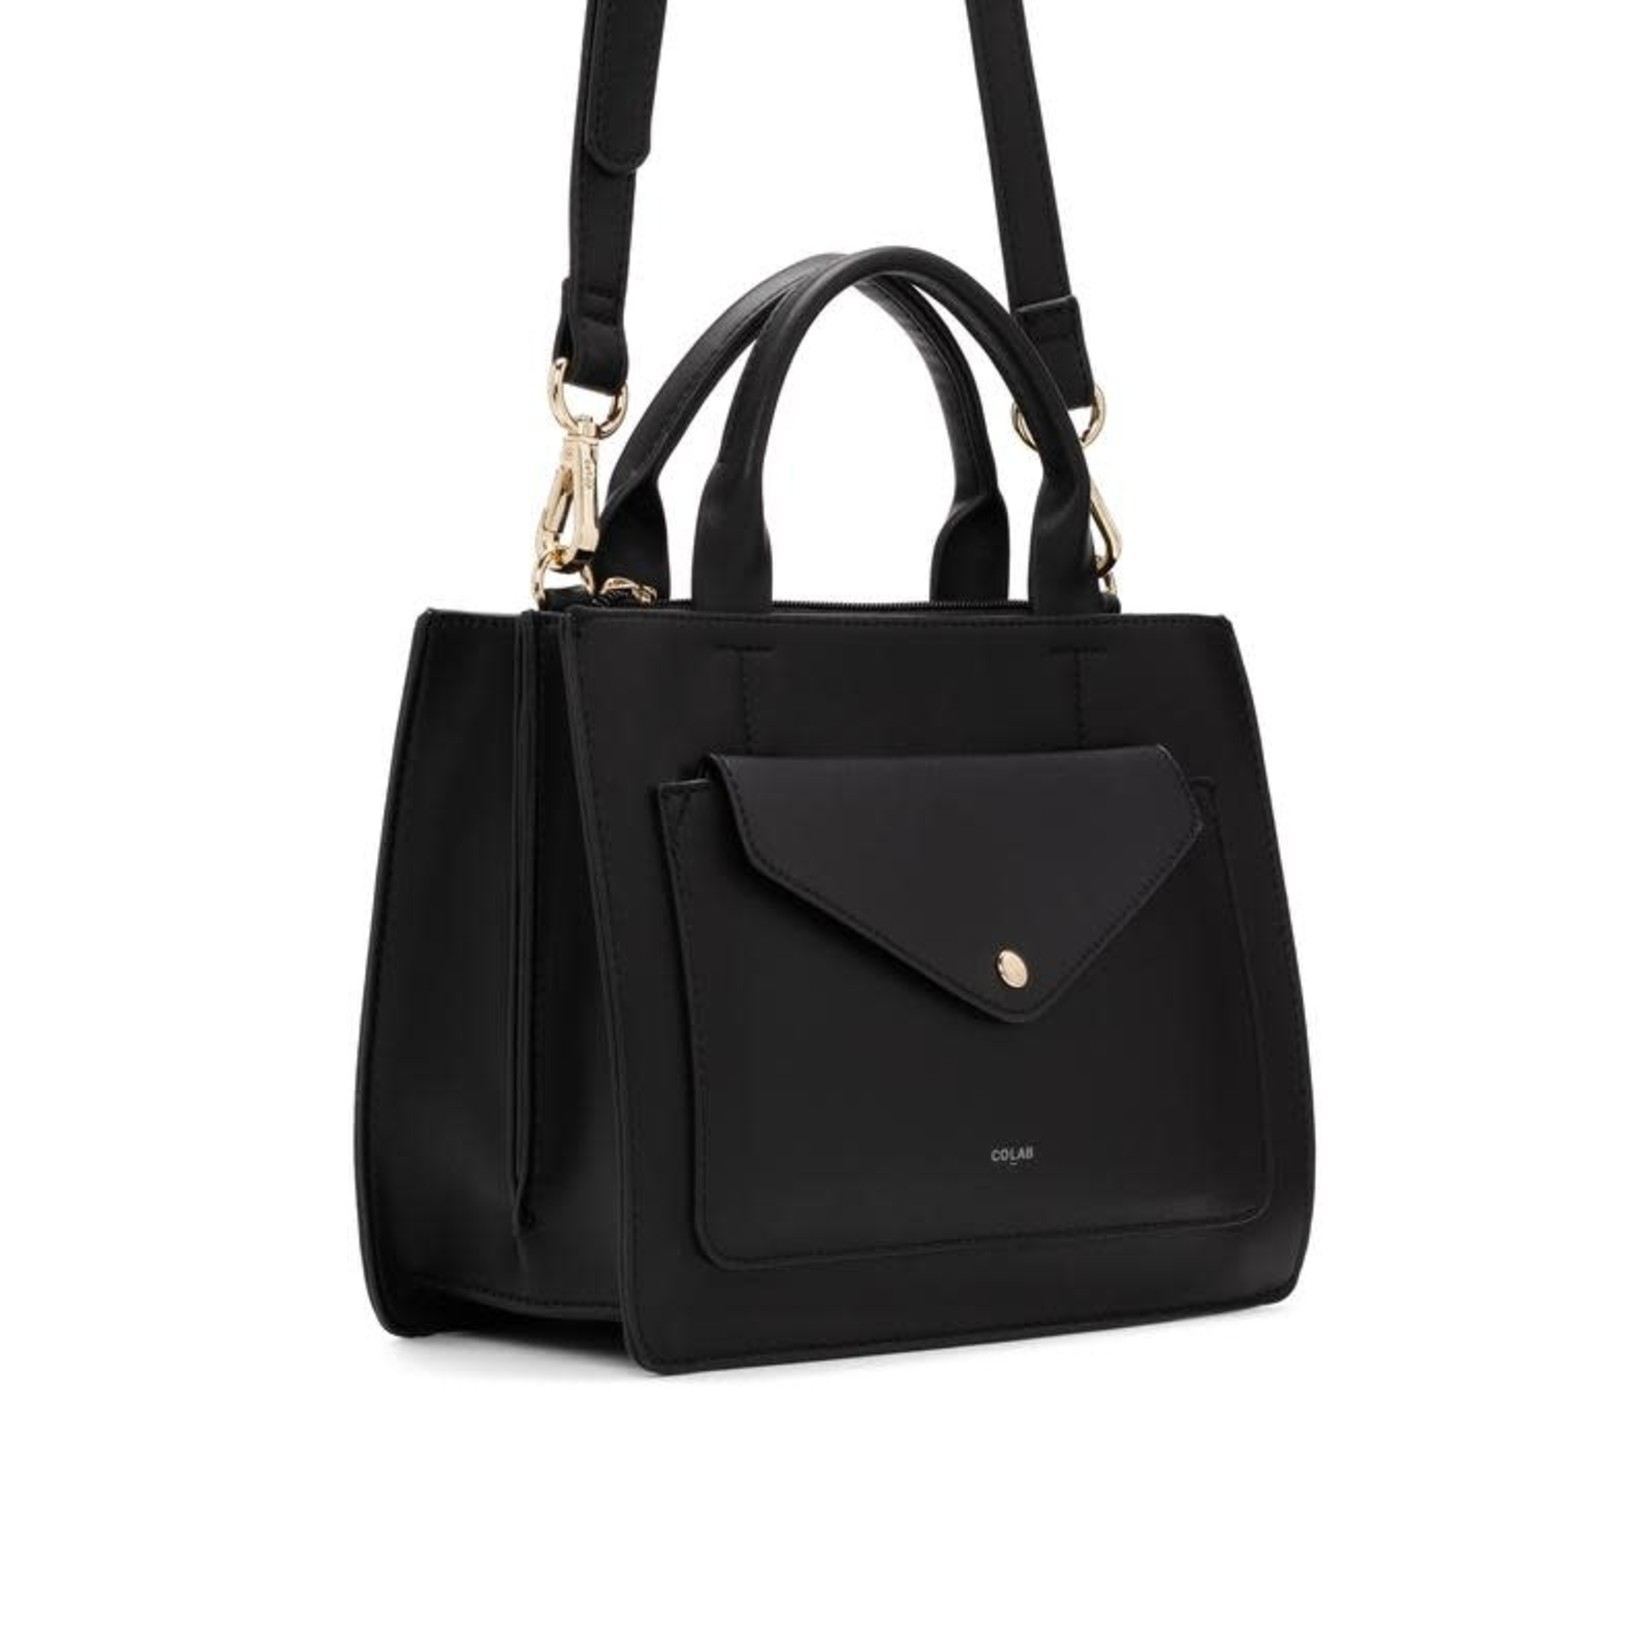 Co-lab Co-Lab MINI TOTE - noir